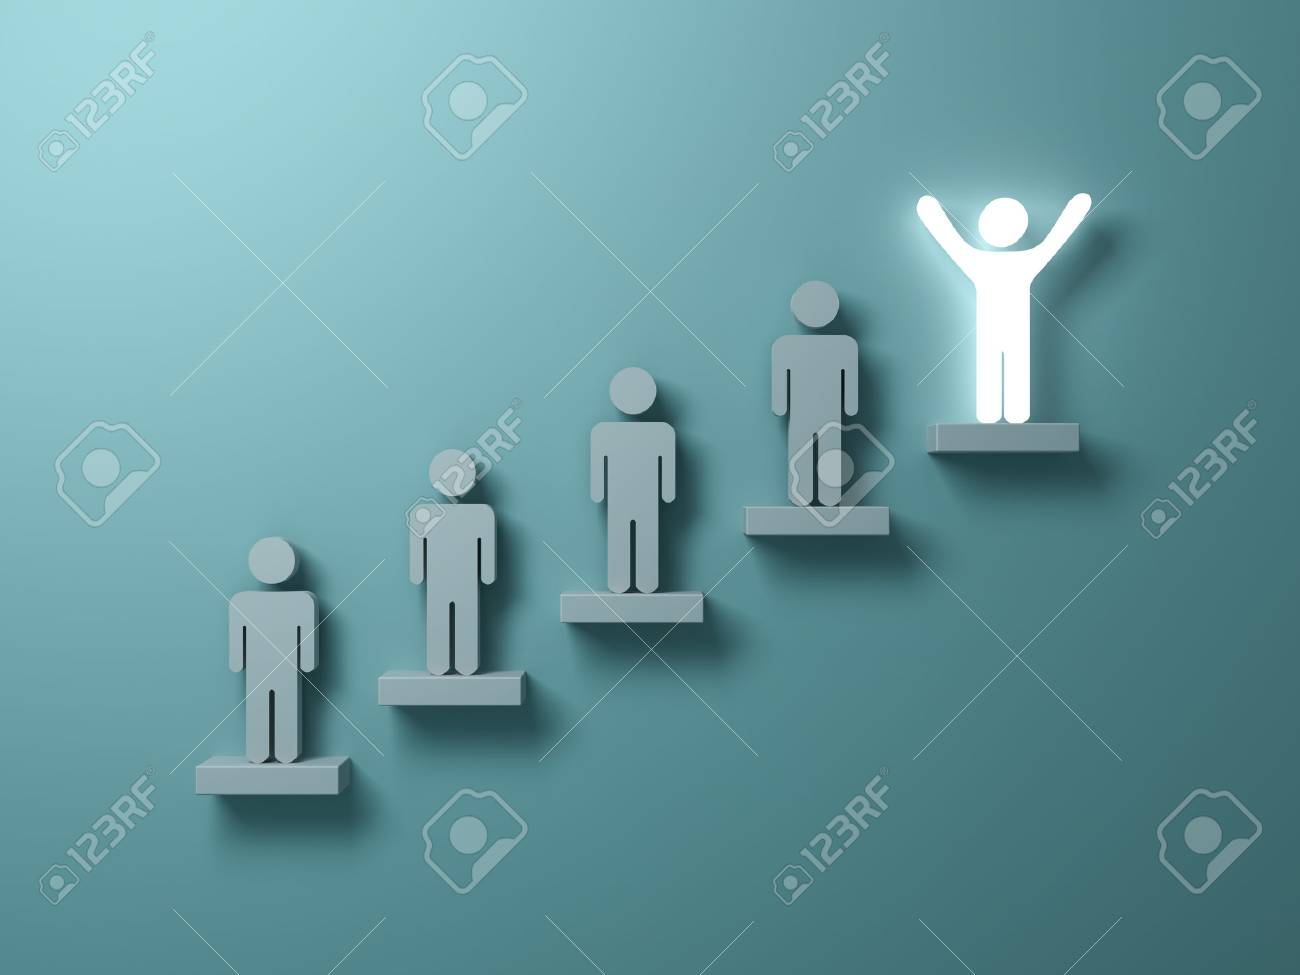 Stand out from the crowd and different creative idea concepts, One glowing light man standing with arms wide open on top of stairs concept on green background with shadows. 3D rendering. - 81770588